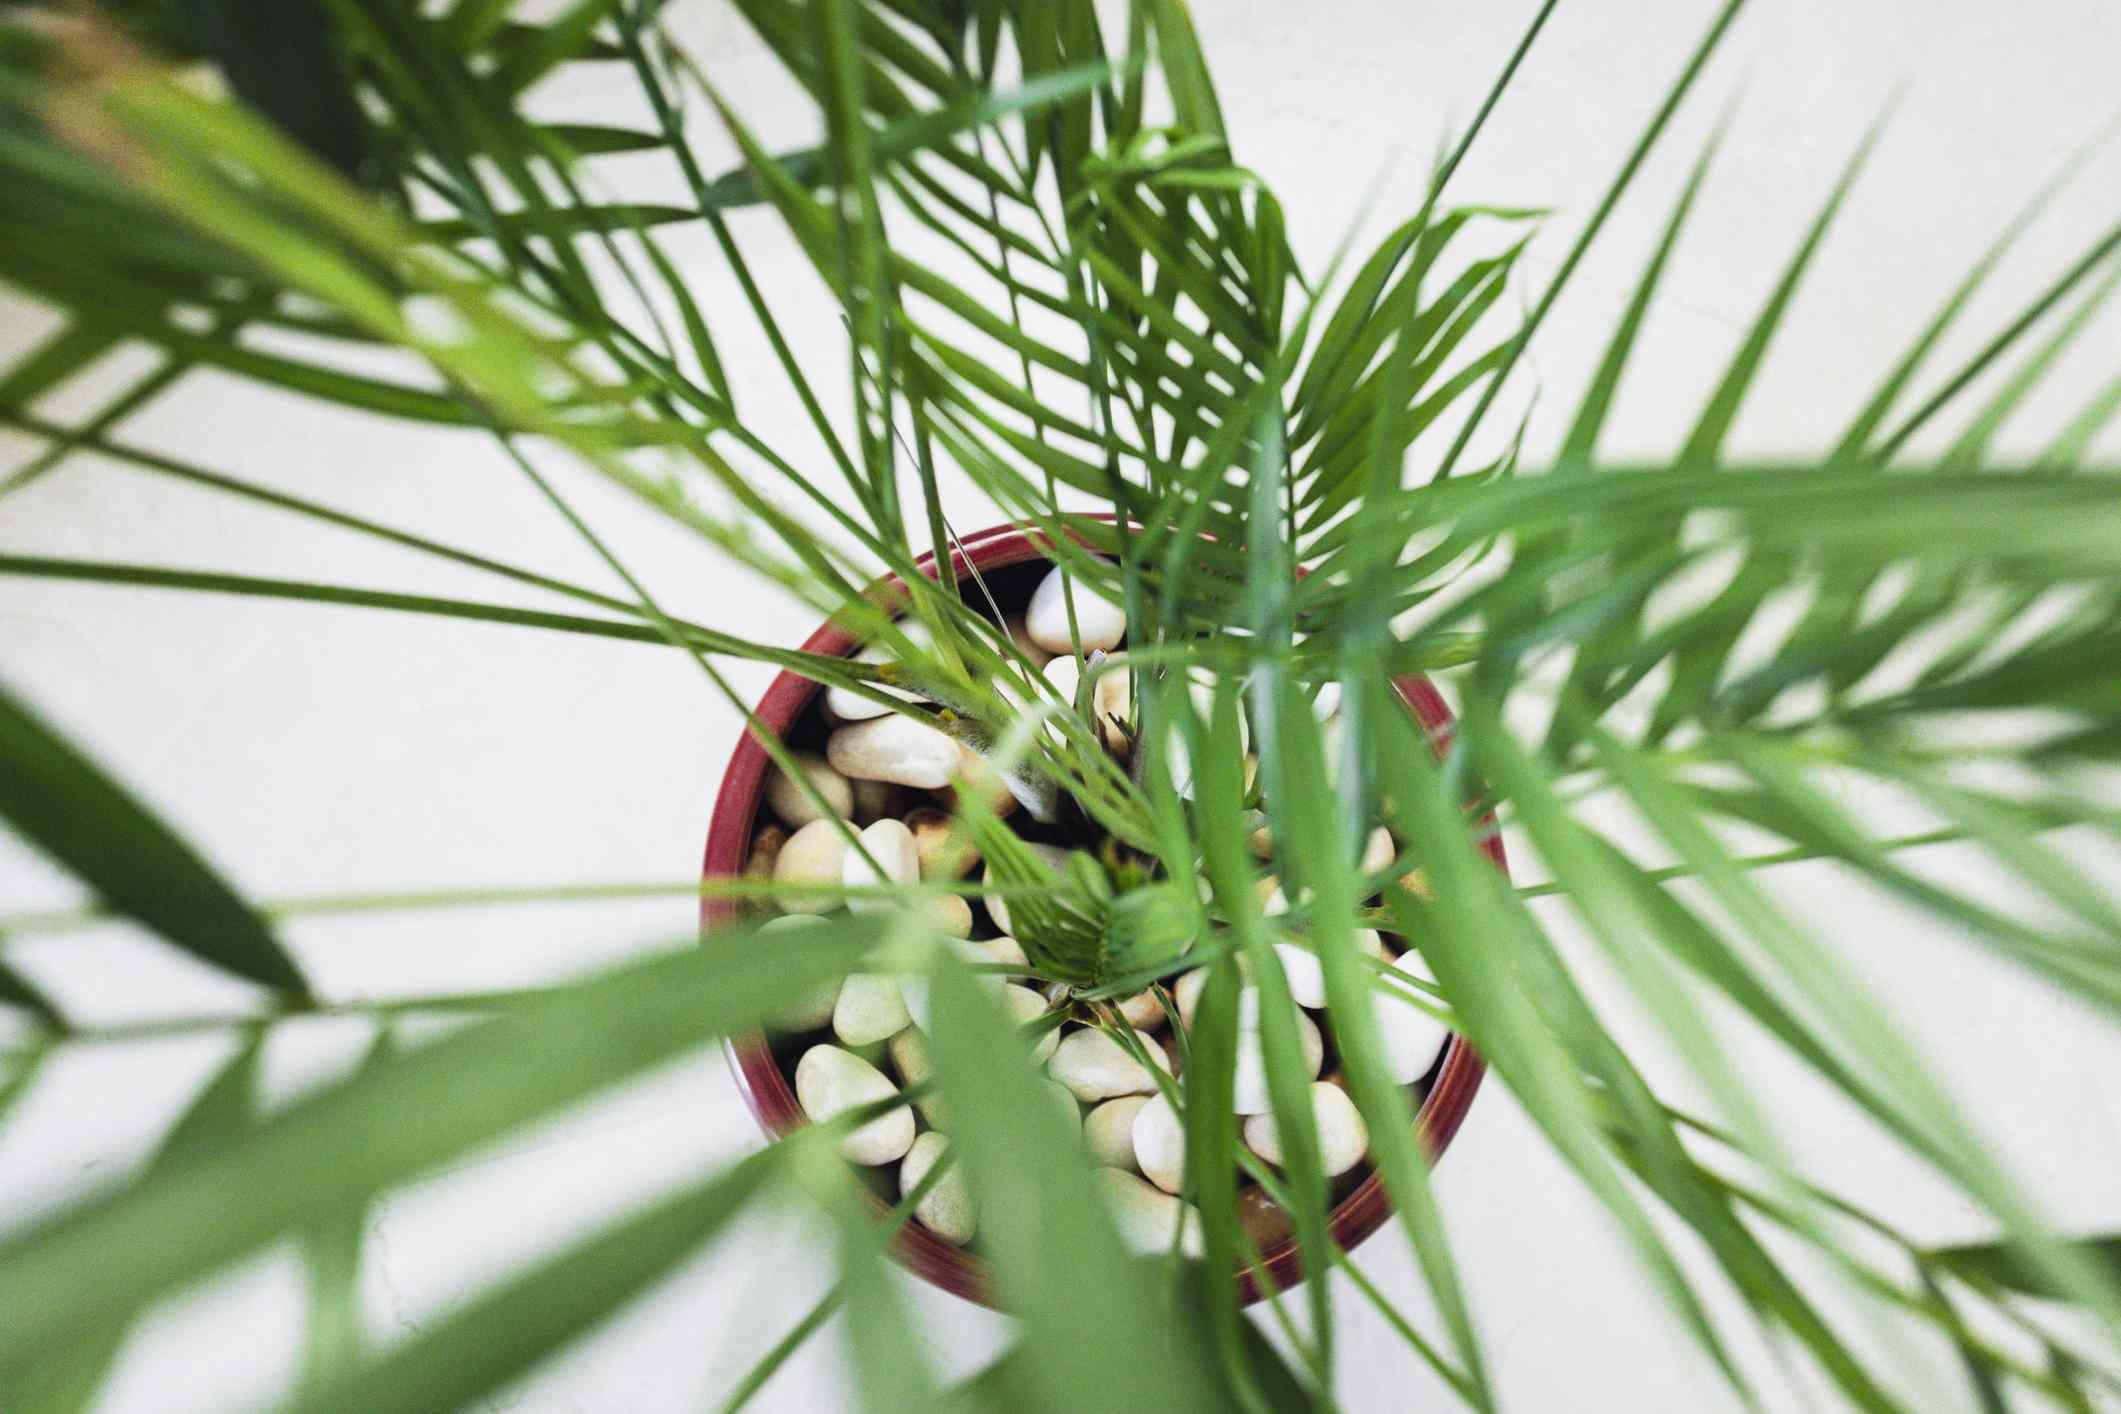 Bamboo palm (Chamaedorea seifrizii) from above in a brown pot.